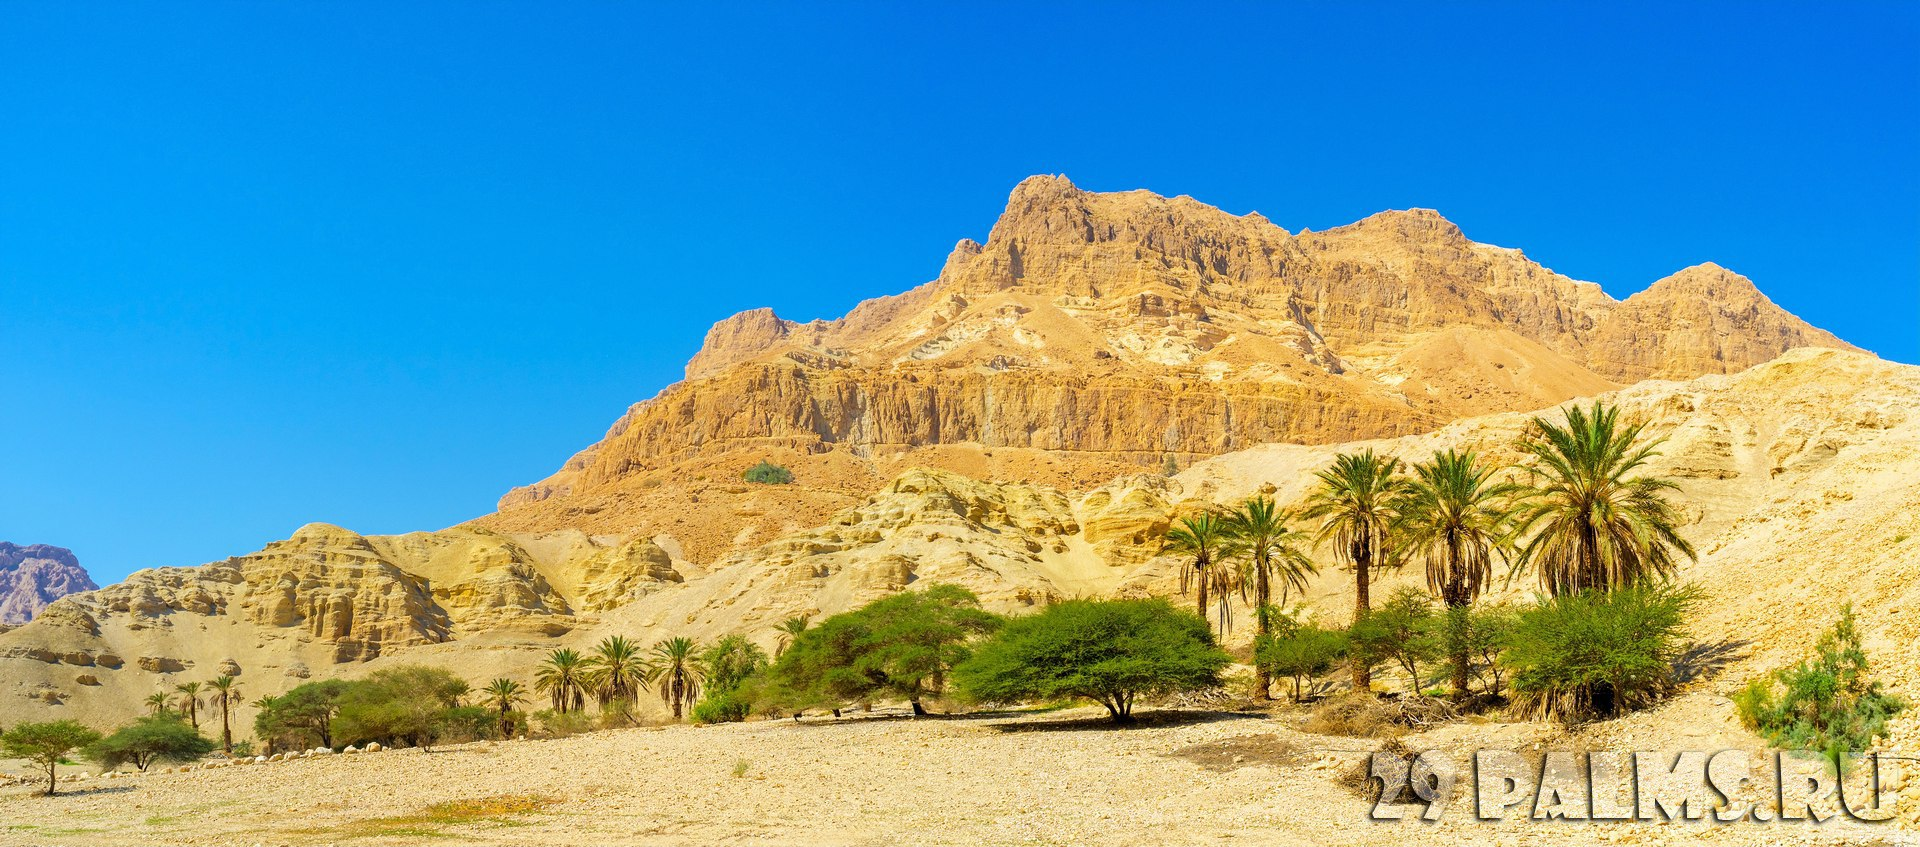 Израиль. Национальный природный парк Эйн-Геди. The Judean Desert is one of the world's smallest, yet most unique desert regions, Ein Gedi Nature Reserve